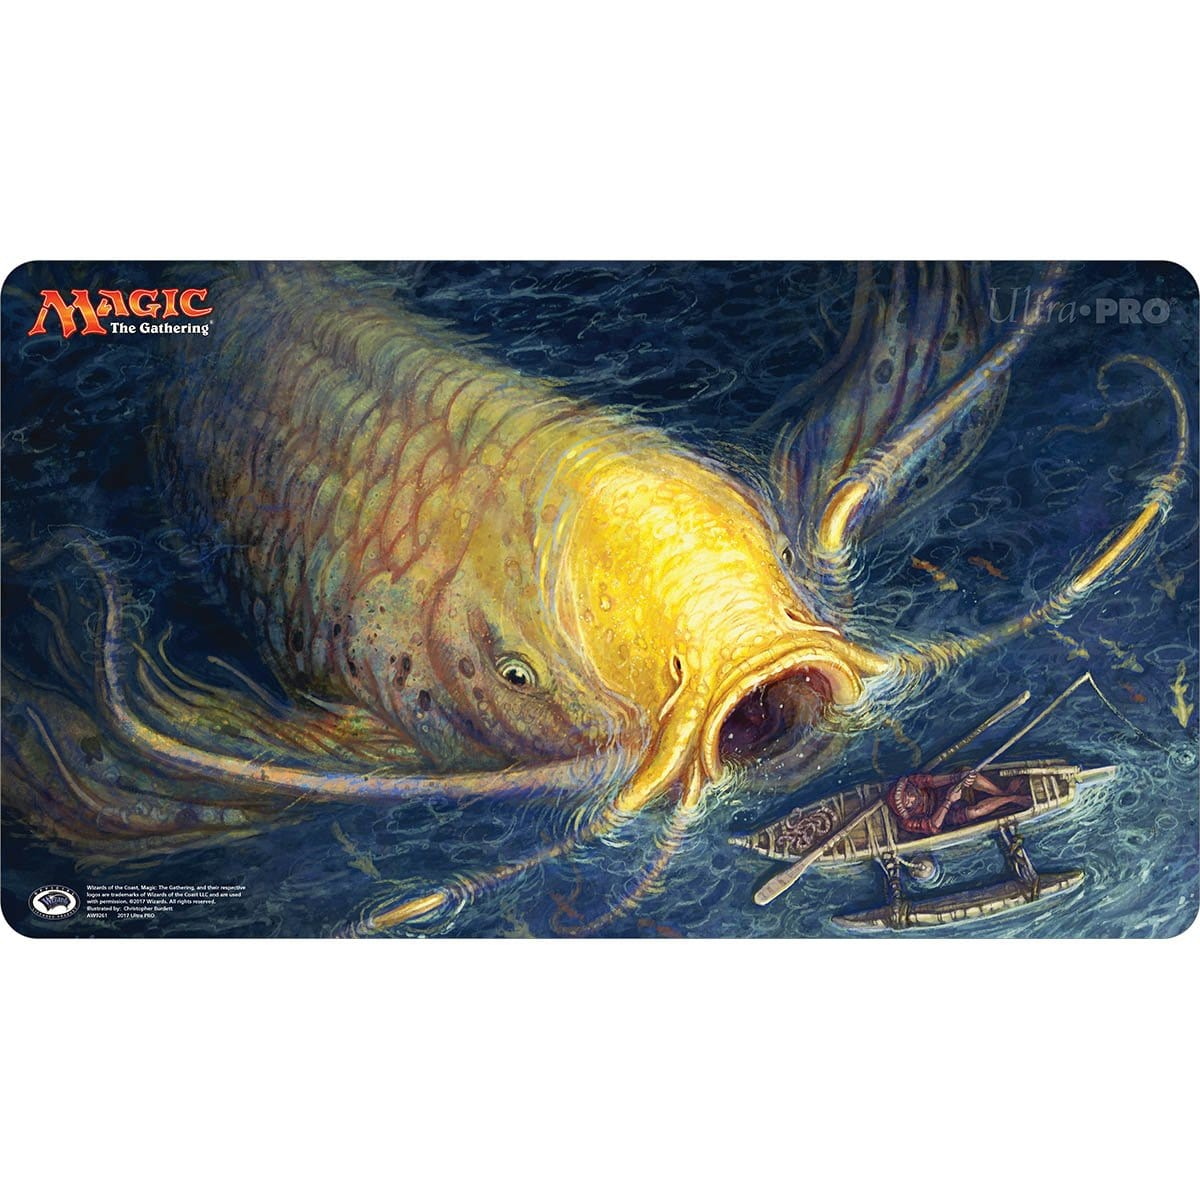 Ancient Carp Playmat - Playmat - Original Magic Art - Accessories for Magic the Gathering and other card games